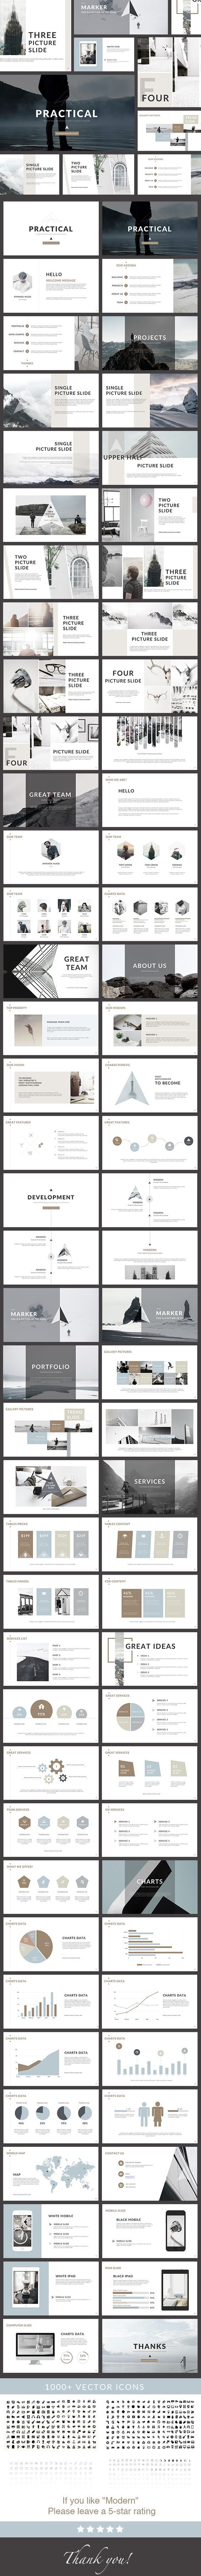 Practical - Clean PowerPoint Presentation - Creative PowerPoint Templates  제품설명, 이미지 위주로 보여줌